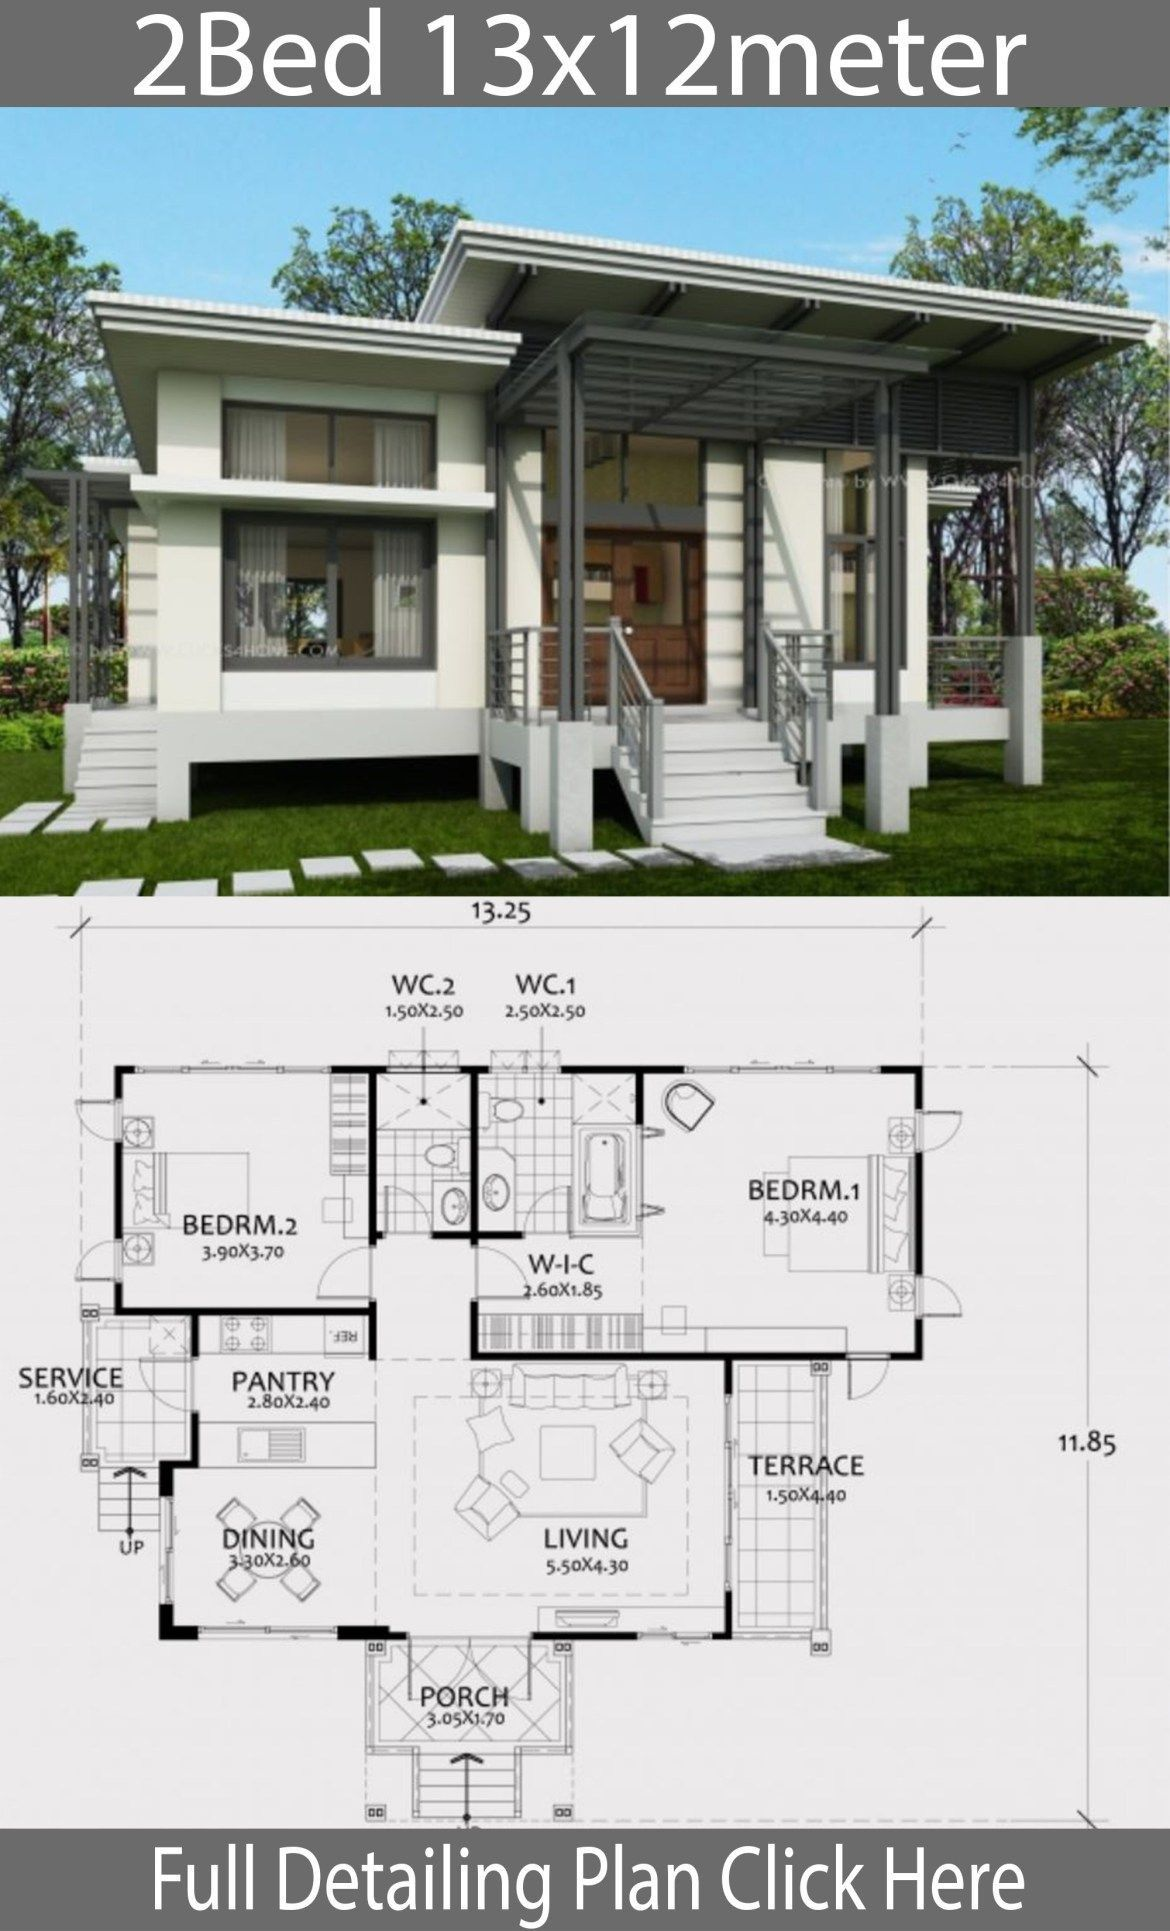 Fresh 2 Bedroom House Plans One Story Modern E Story House Plan 13x12m With 2 Bedrooms In 202 Brick Exterior House House Plans Story House